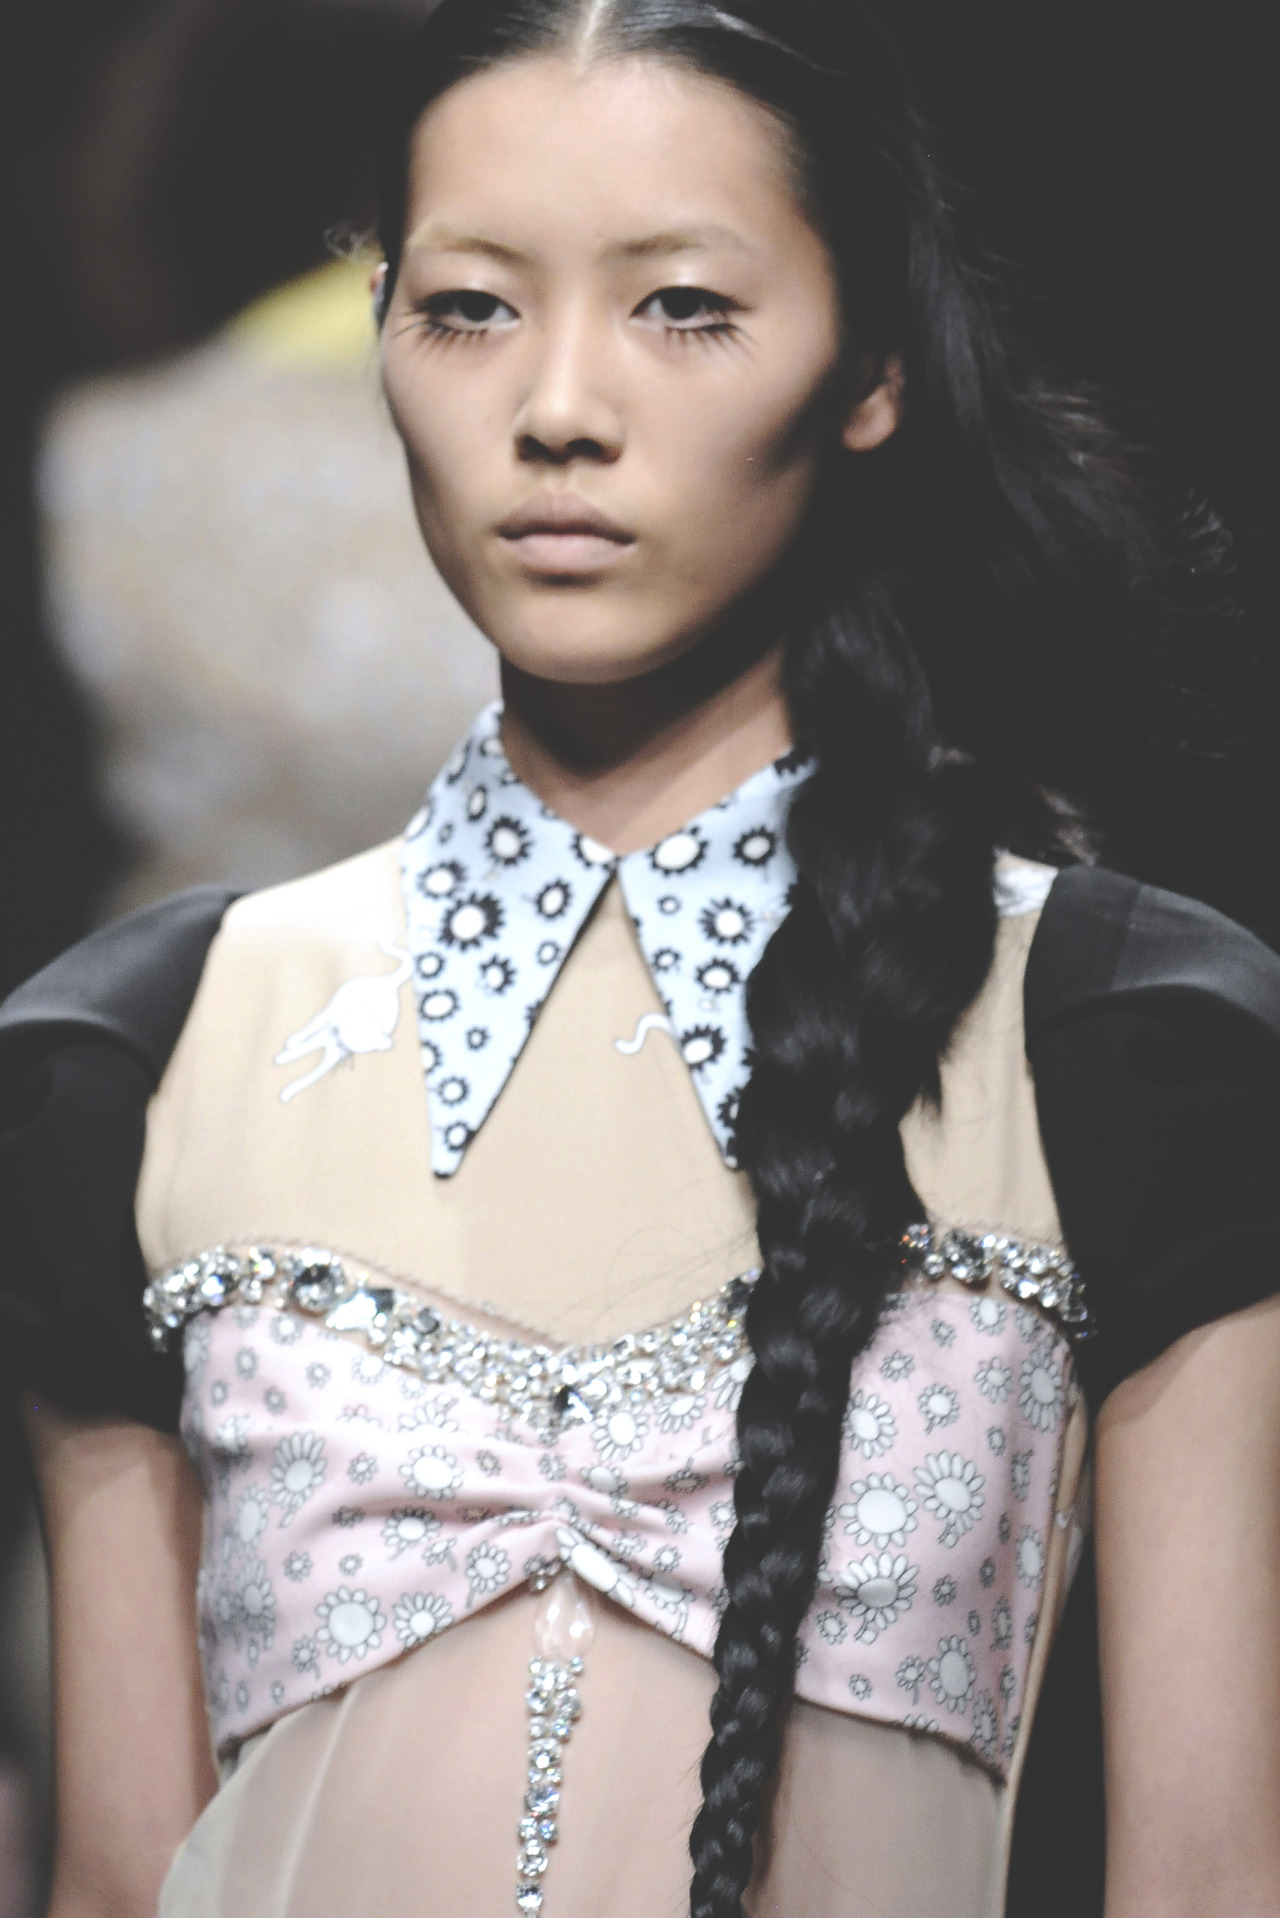 miu miu s/s 2010, liu wen on the runway at paris fashion week